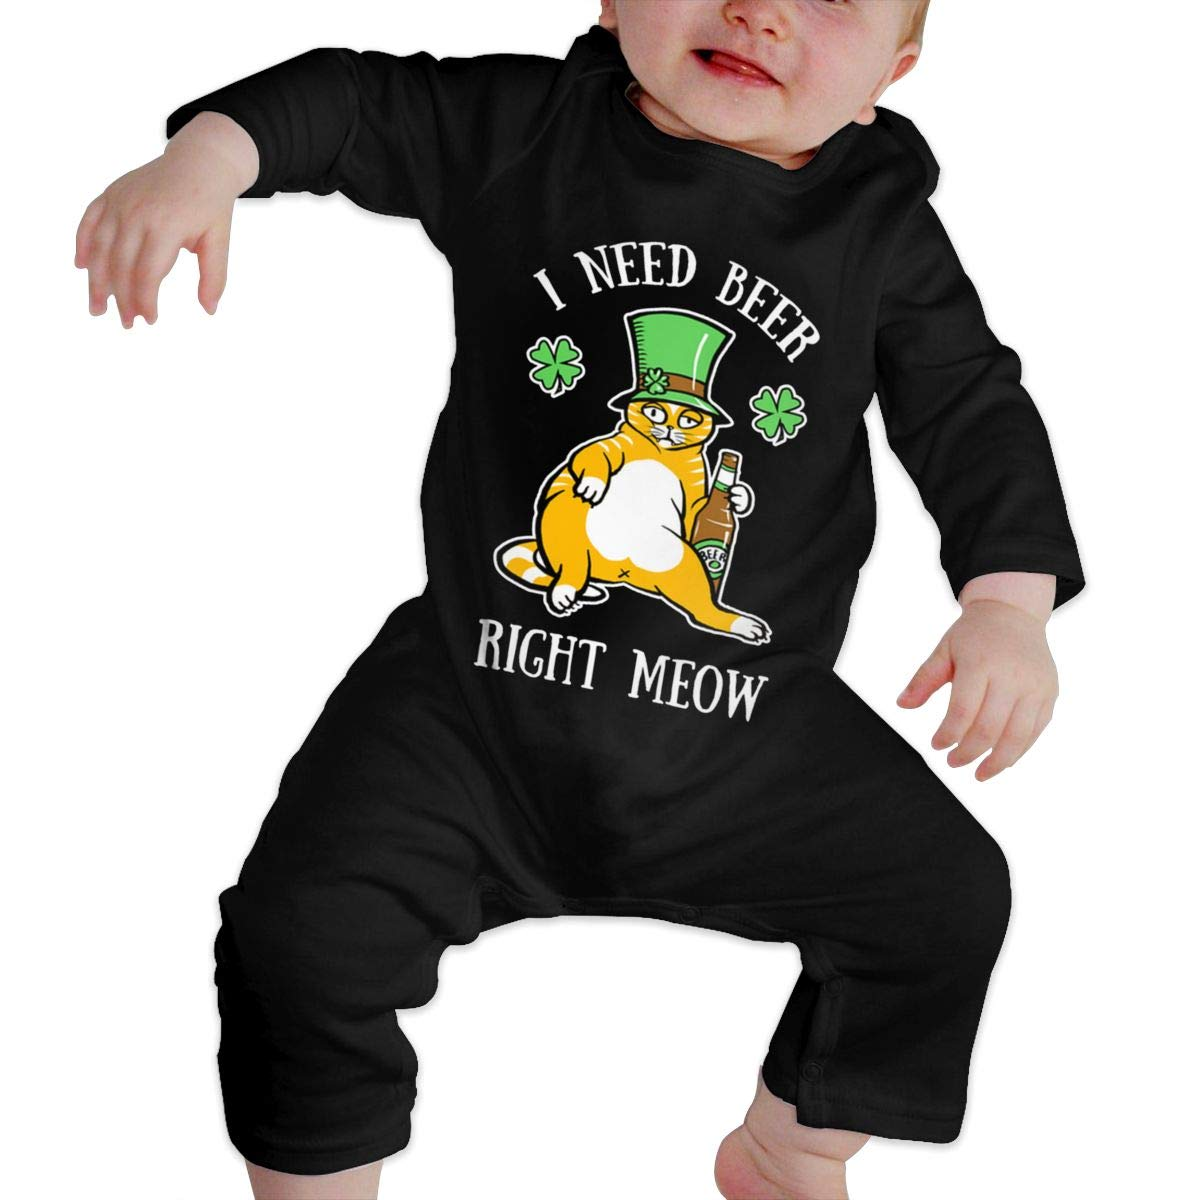 I Need Beer Right Meow Newborn Baby Boy Girl Romper Jumpsuit Long Sleeve Bodysuit Overalls Outfits Clothes